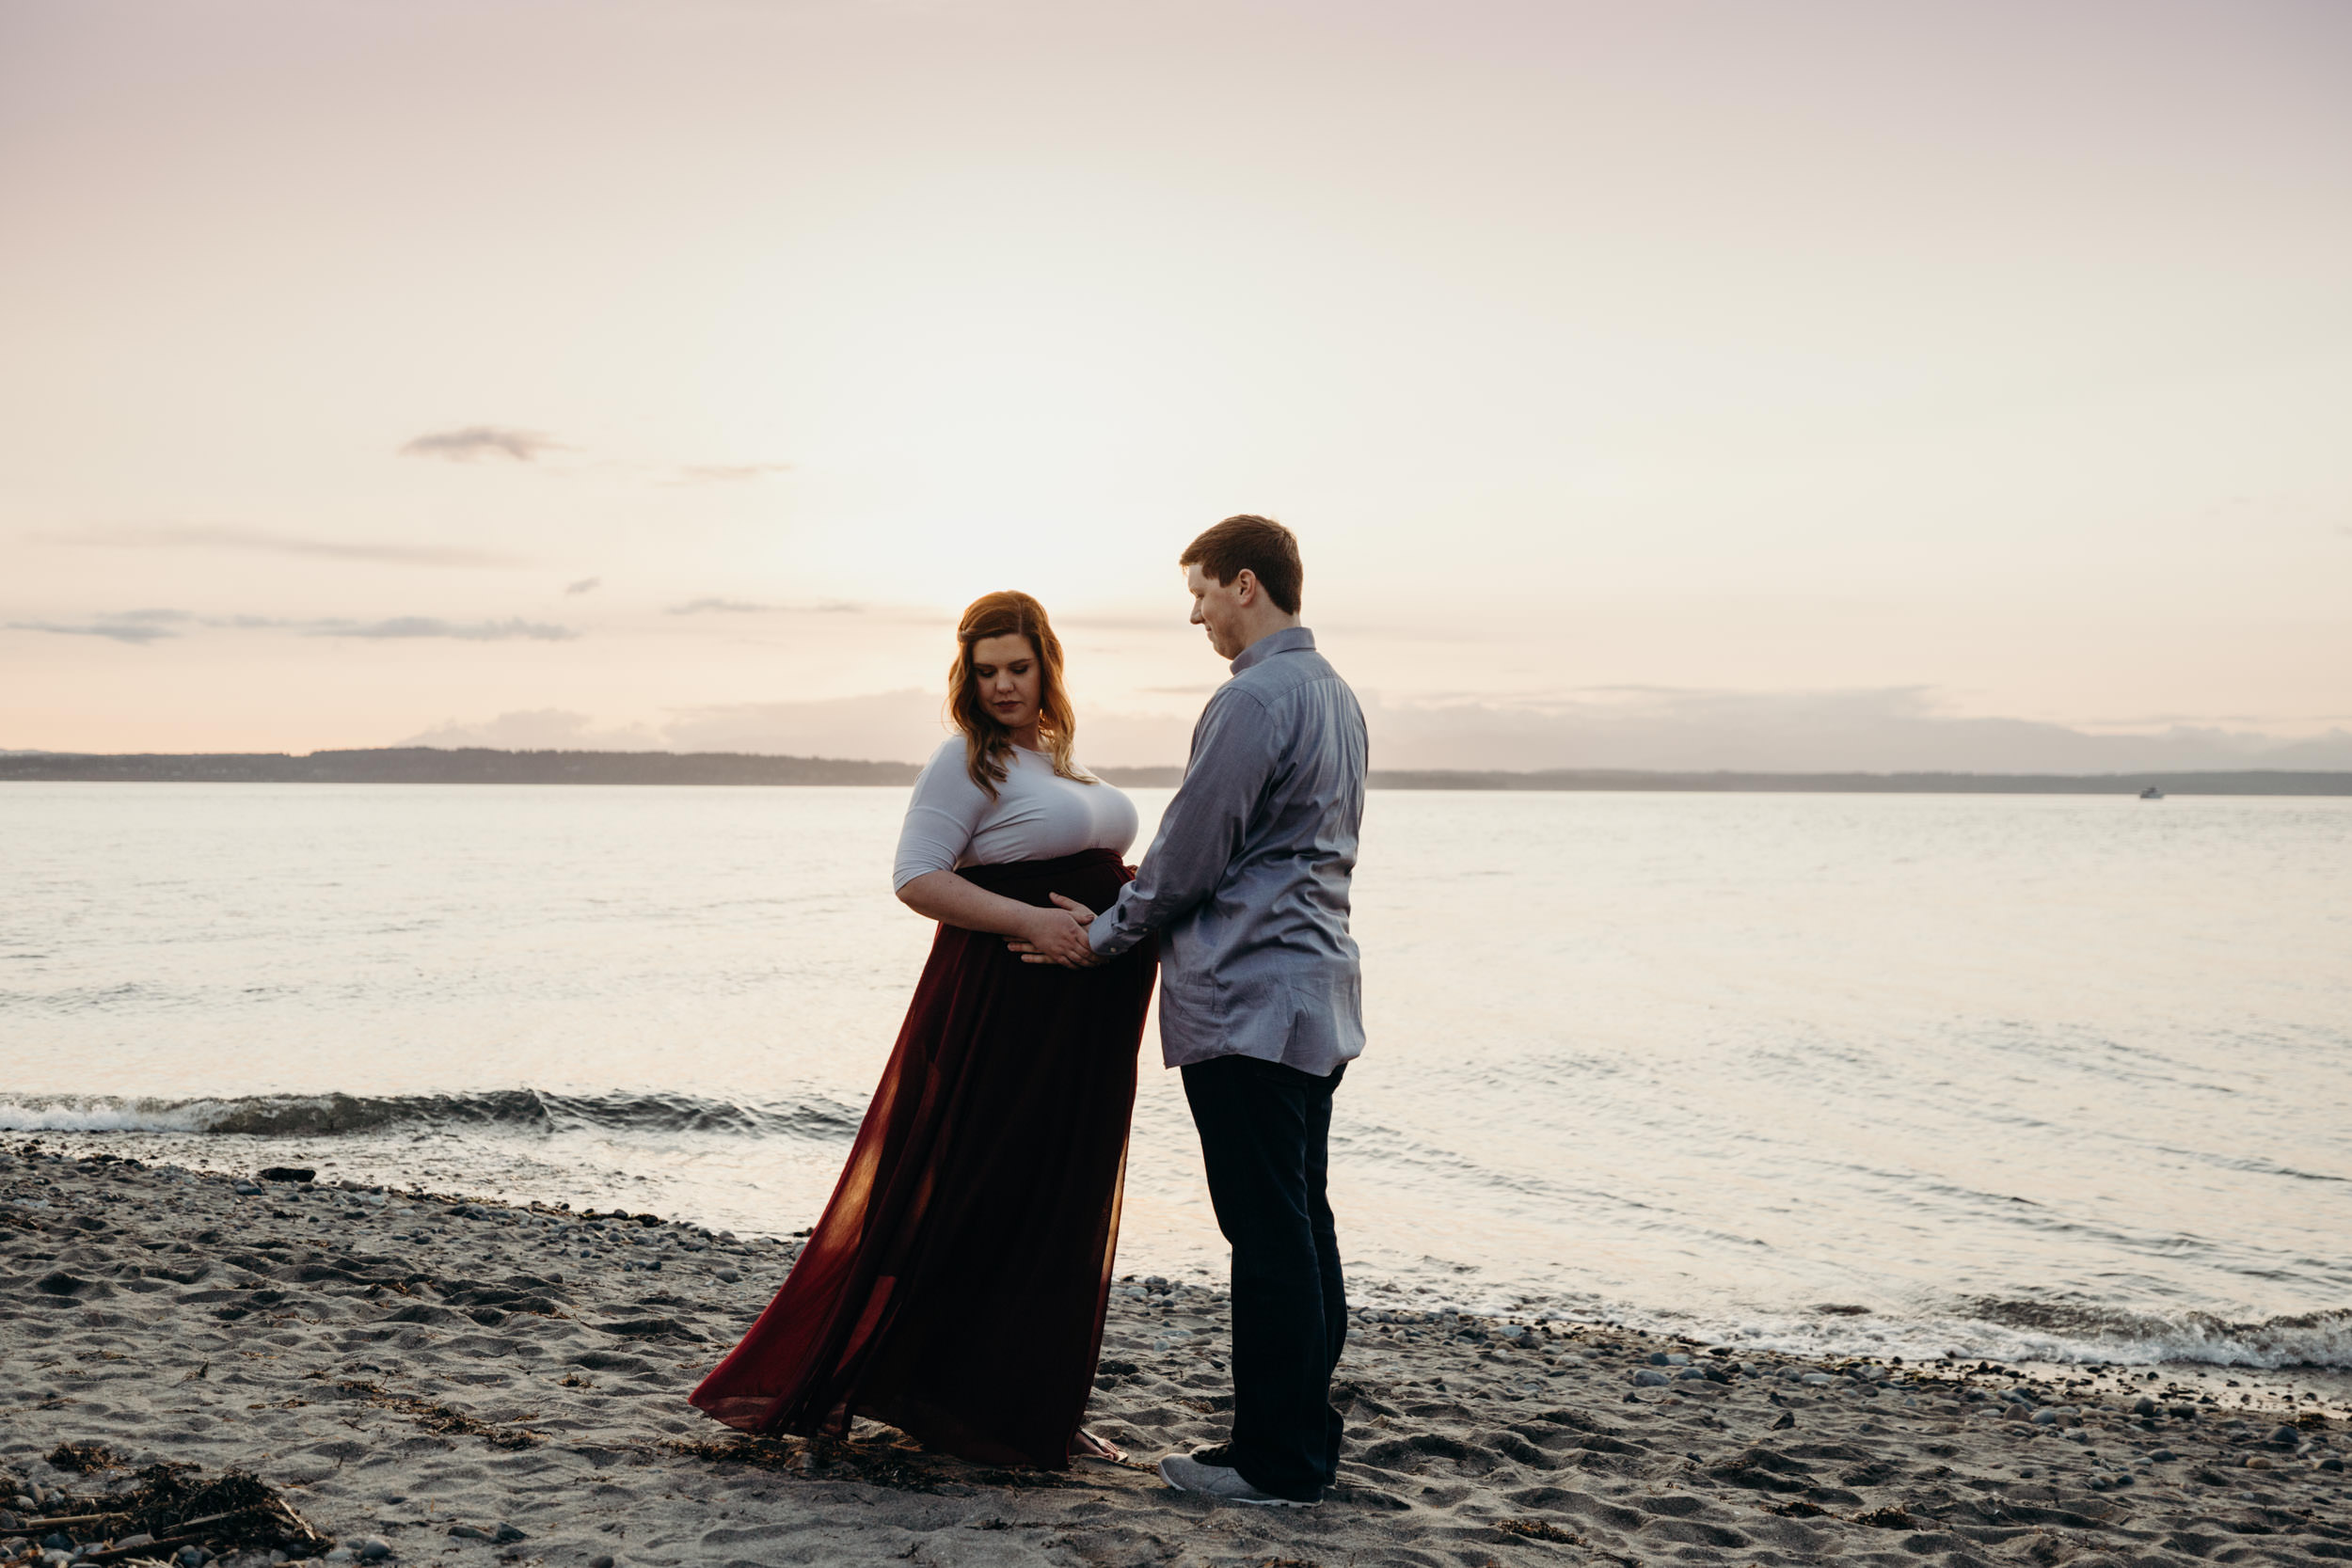 outdoor maternity photography outdoor pregnancy photo shoot seattle washington.jpg